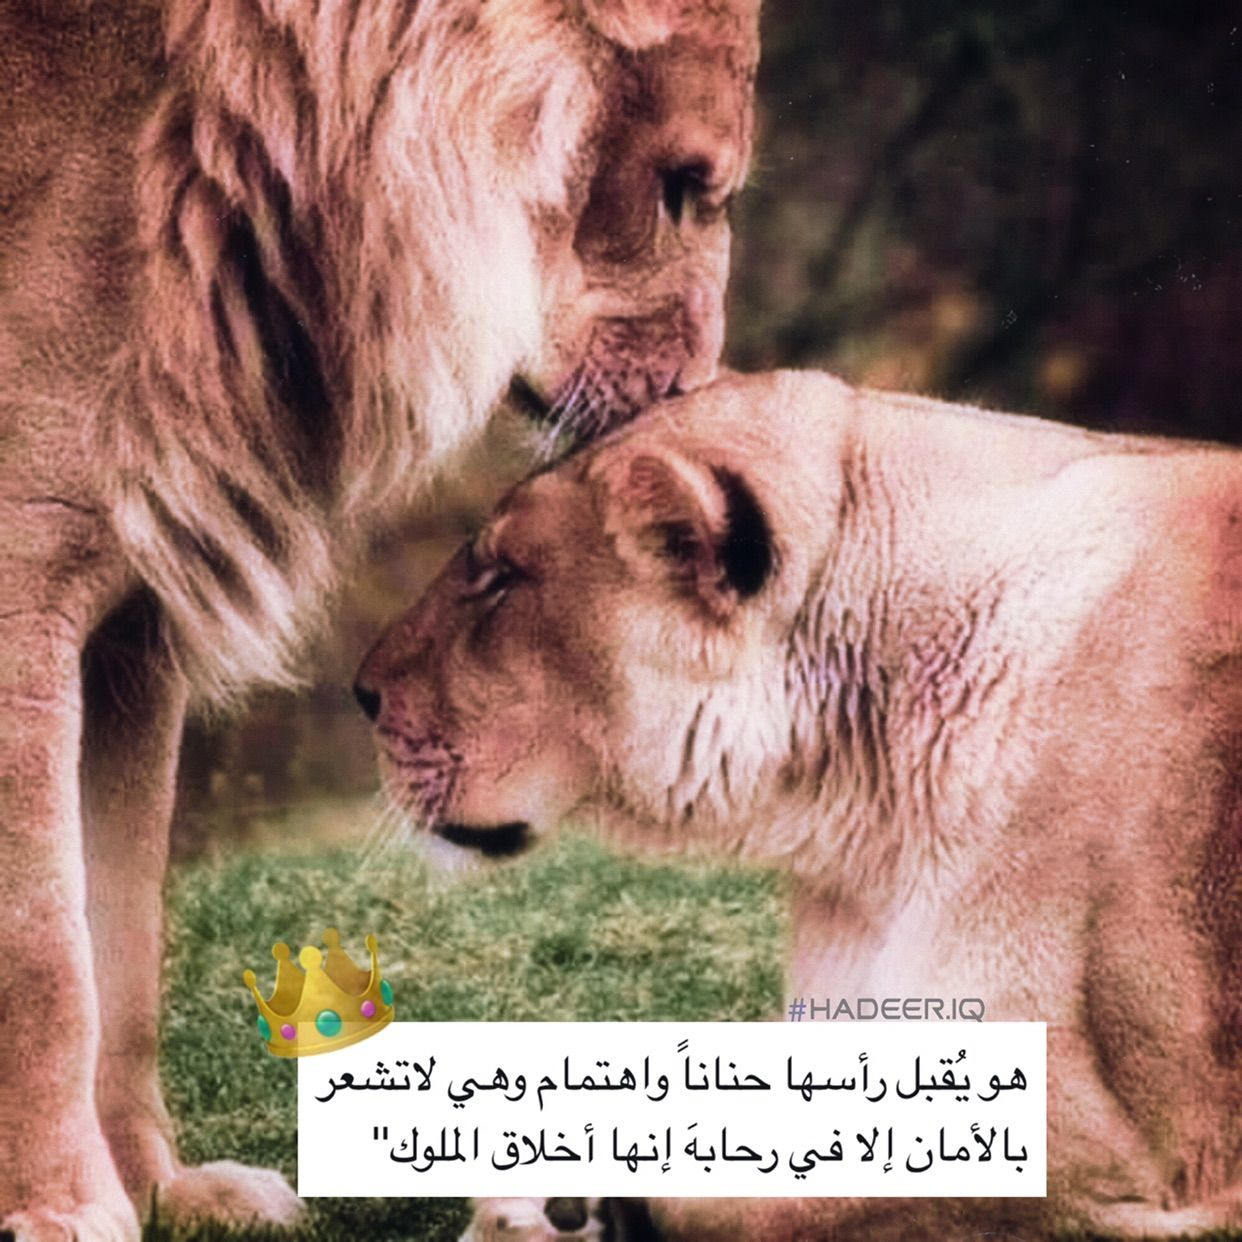 اسد ملك Lion لبوه حب Funny Arabic Quotes Book Cover Art Arabic Love Quotes